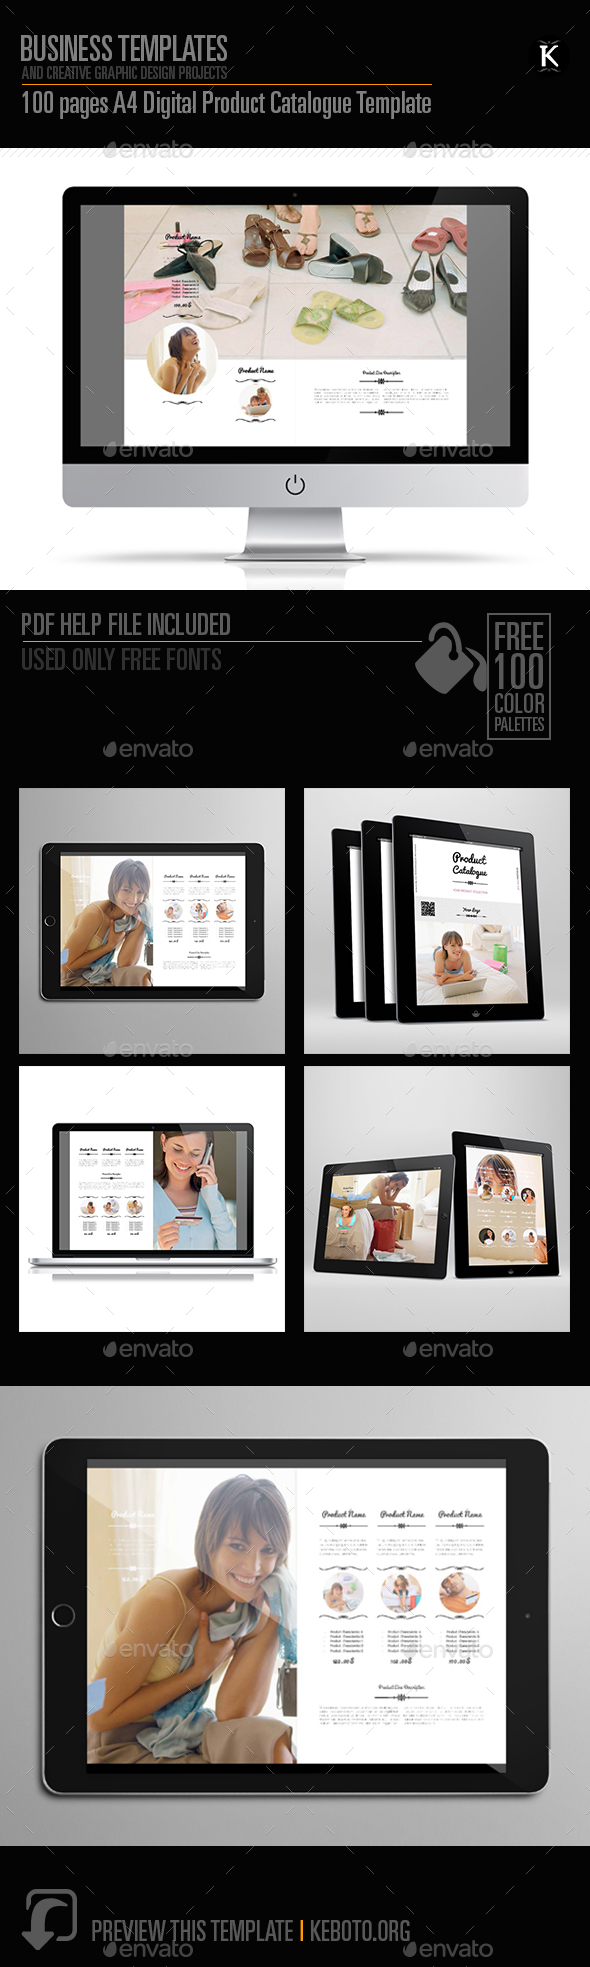 100 pages A4 Digital Product Catalogue Template - ePublishing